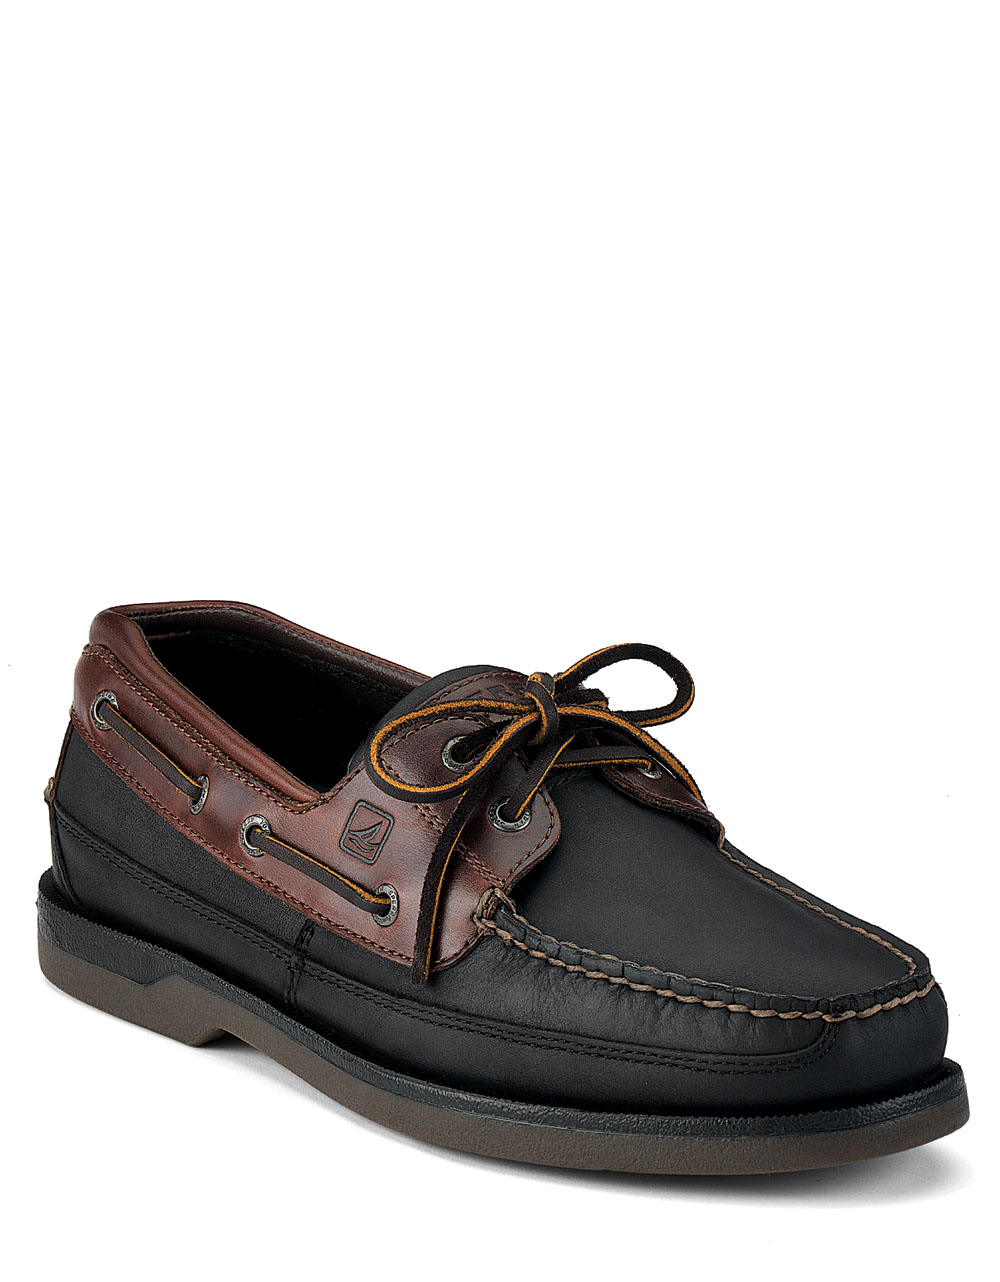 sperry top sider black mako boat shoes in black for lyst